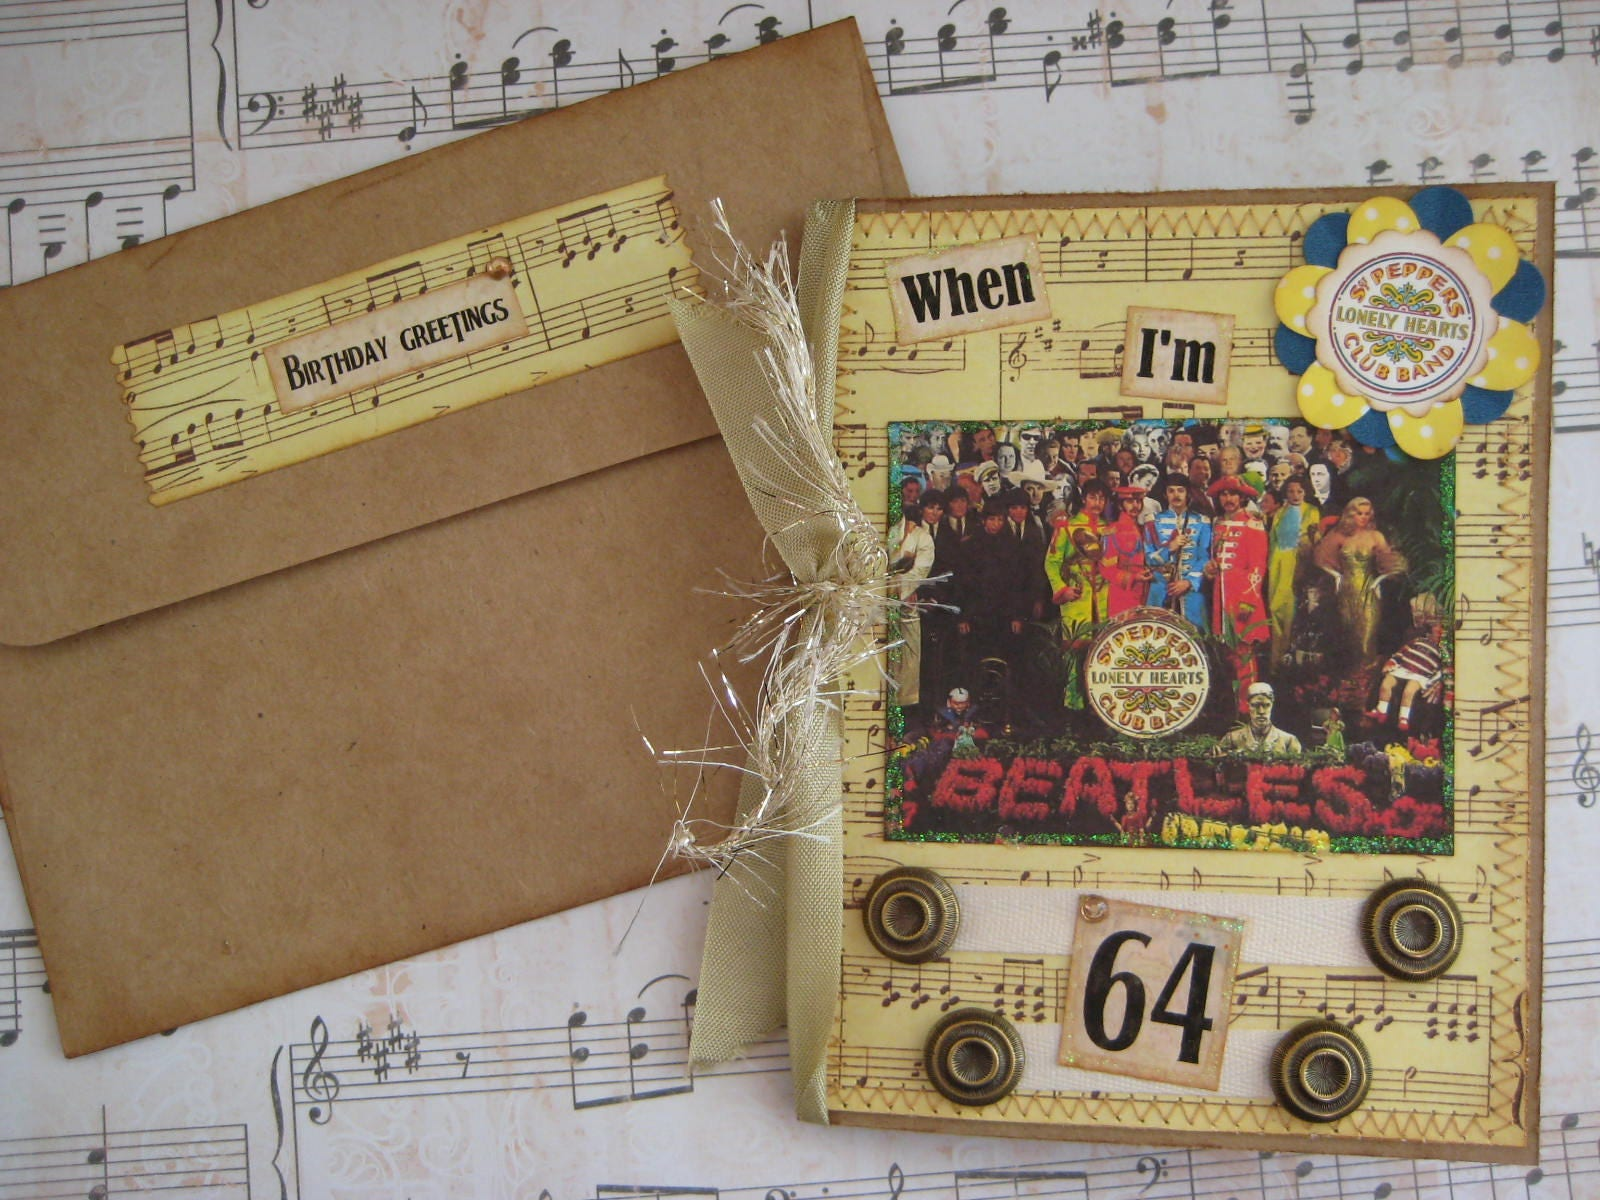 Beatles Birthday Card When I m 64 Sgt Pepper s